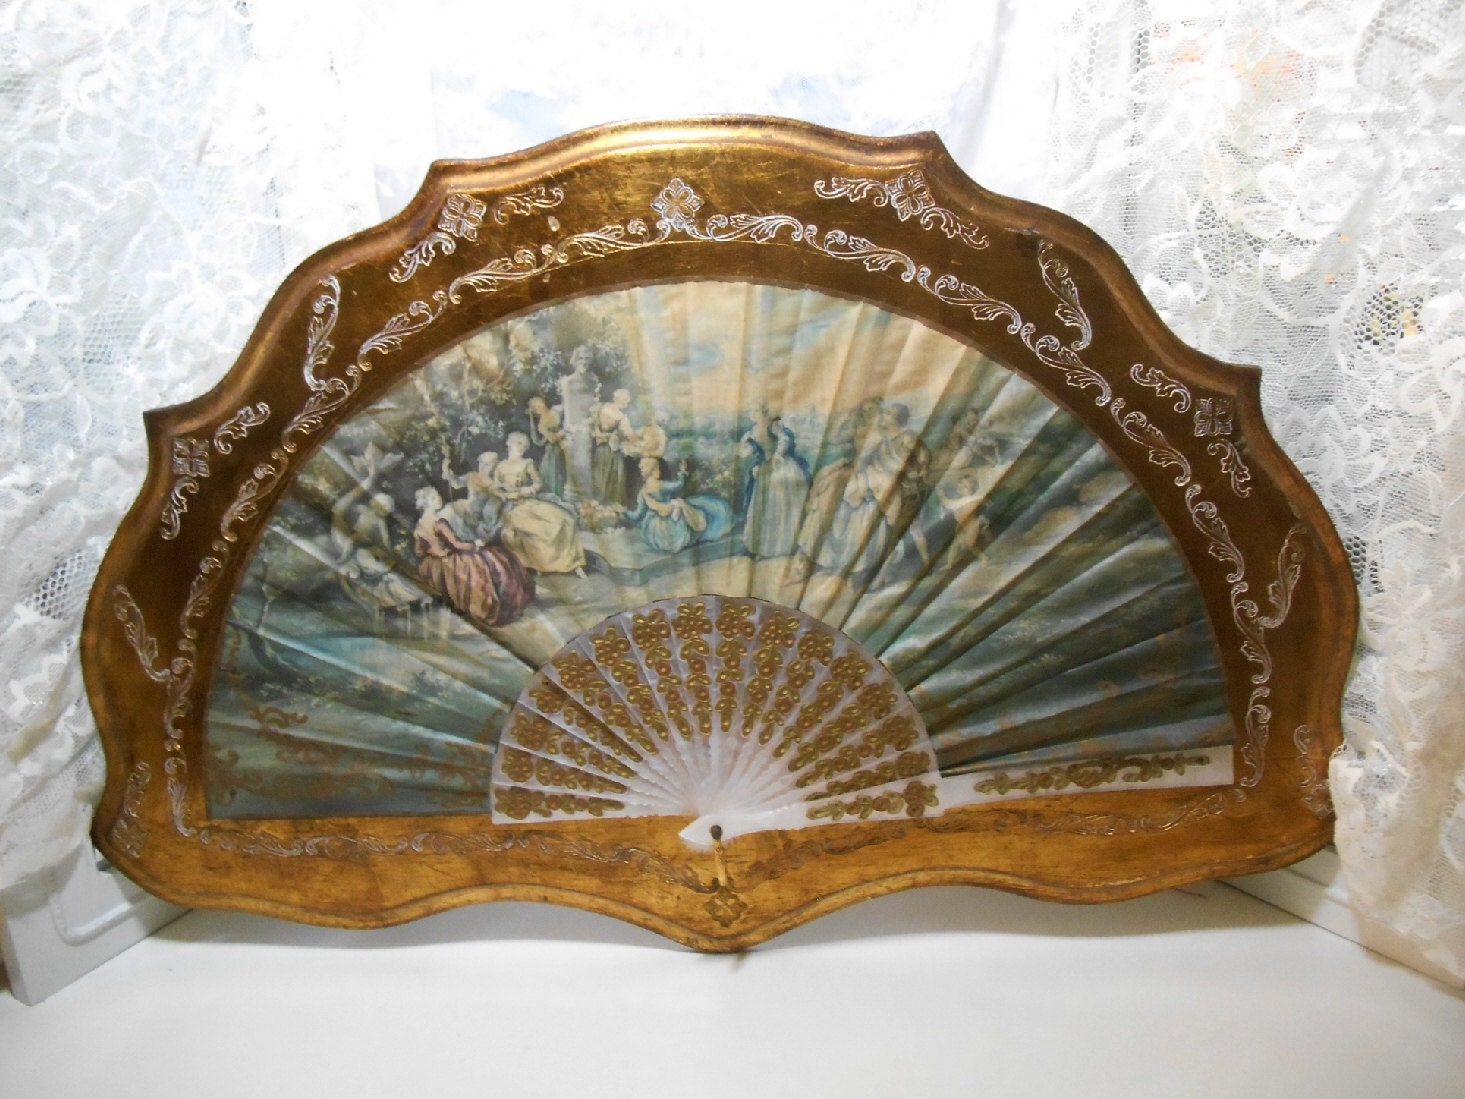 Antique Baroque Style Boudoir Wall Decor Made in Italy